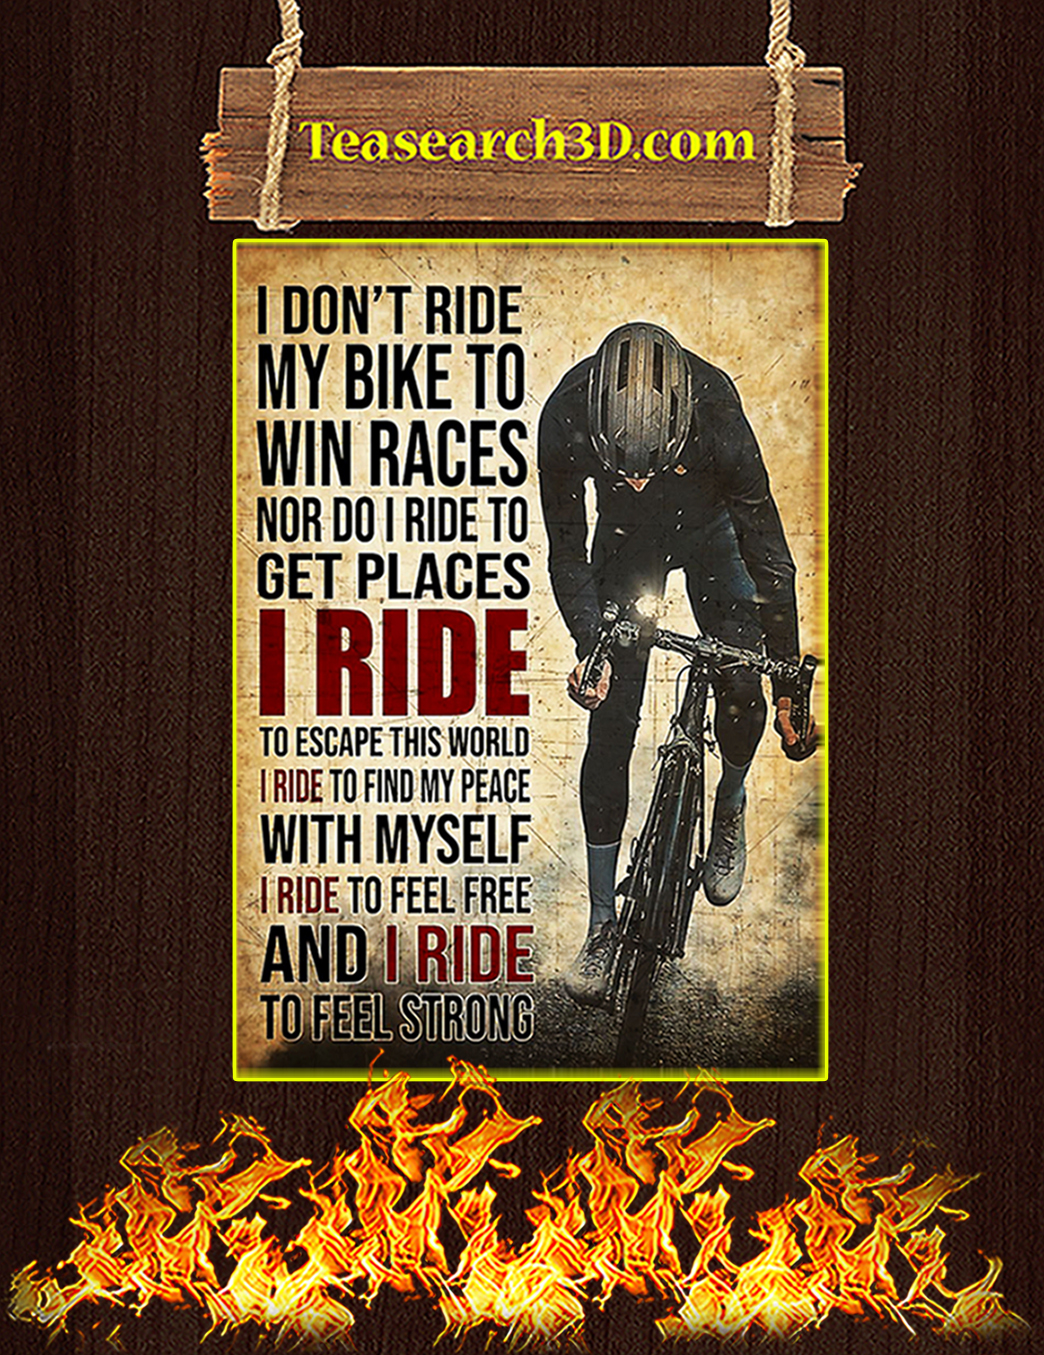 I don't ride my bike to win races poster A1